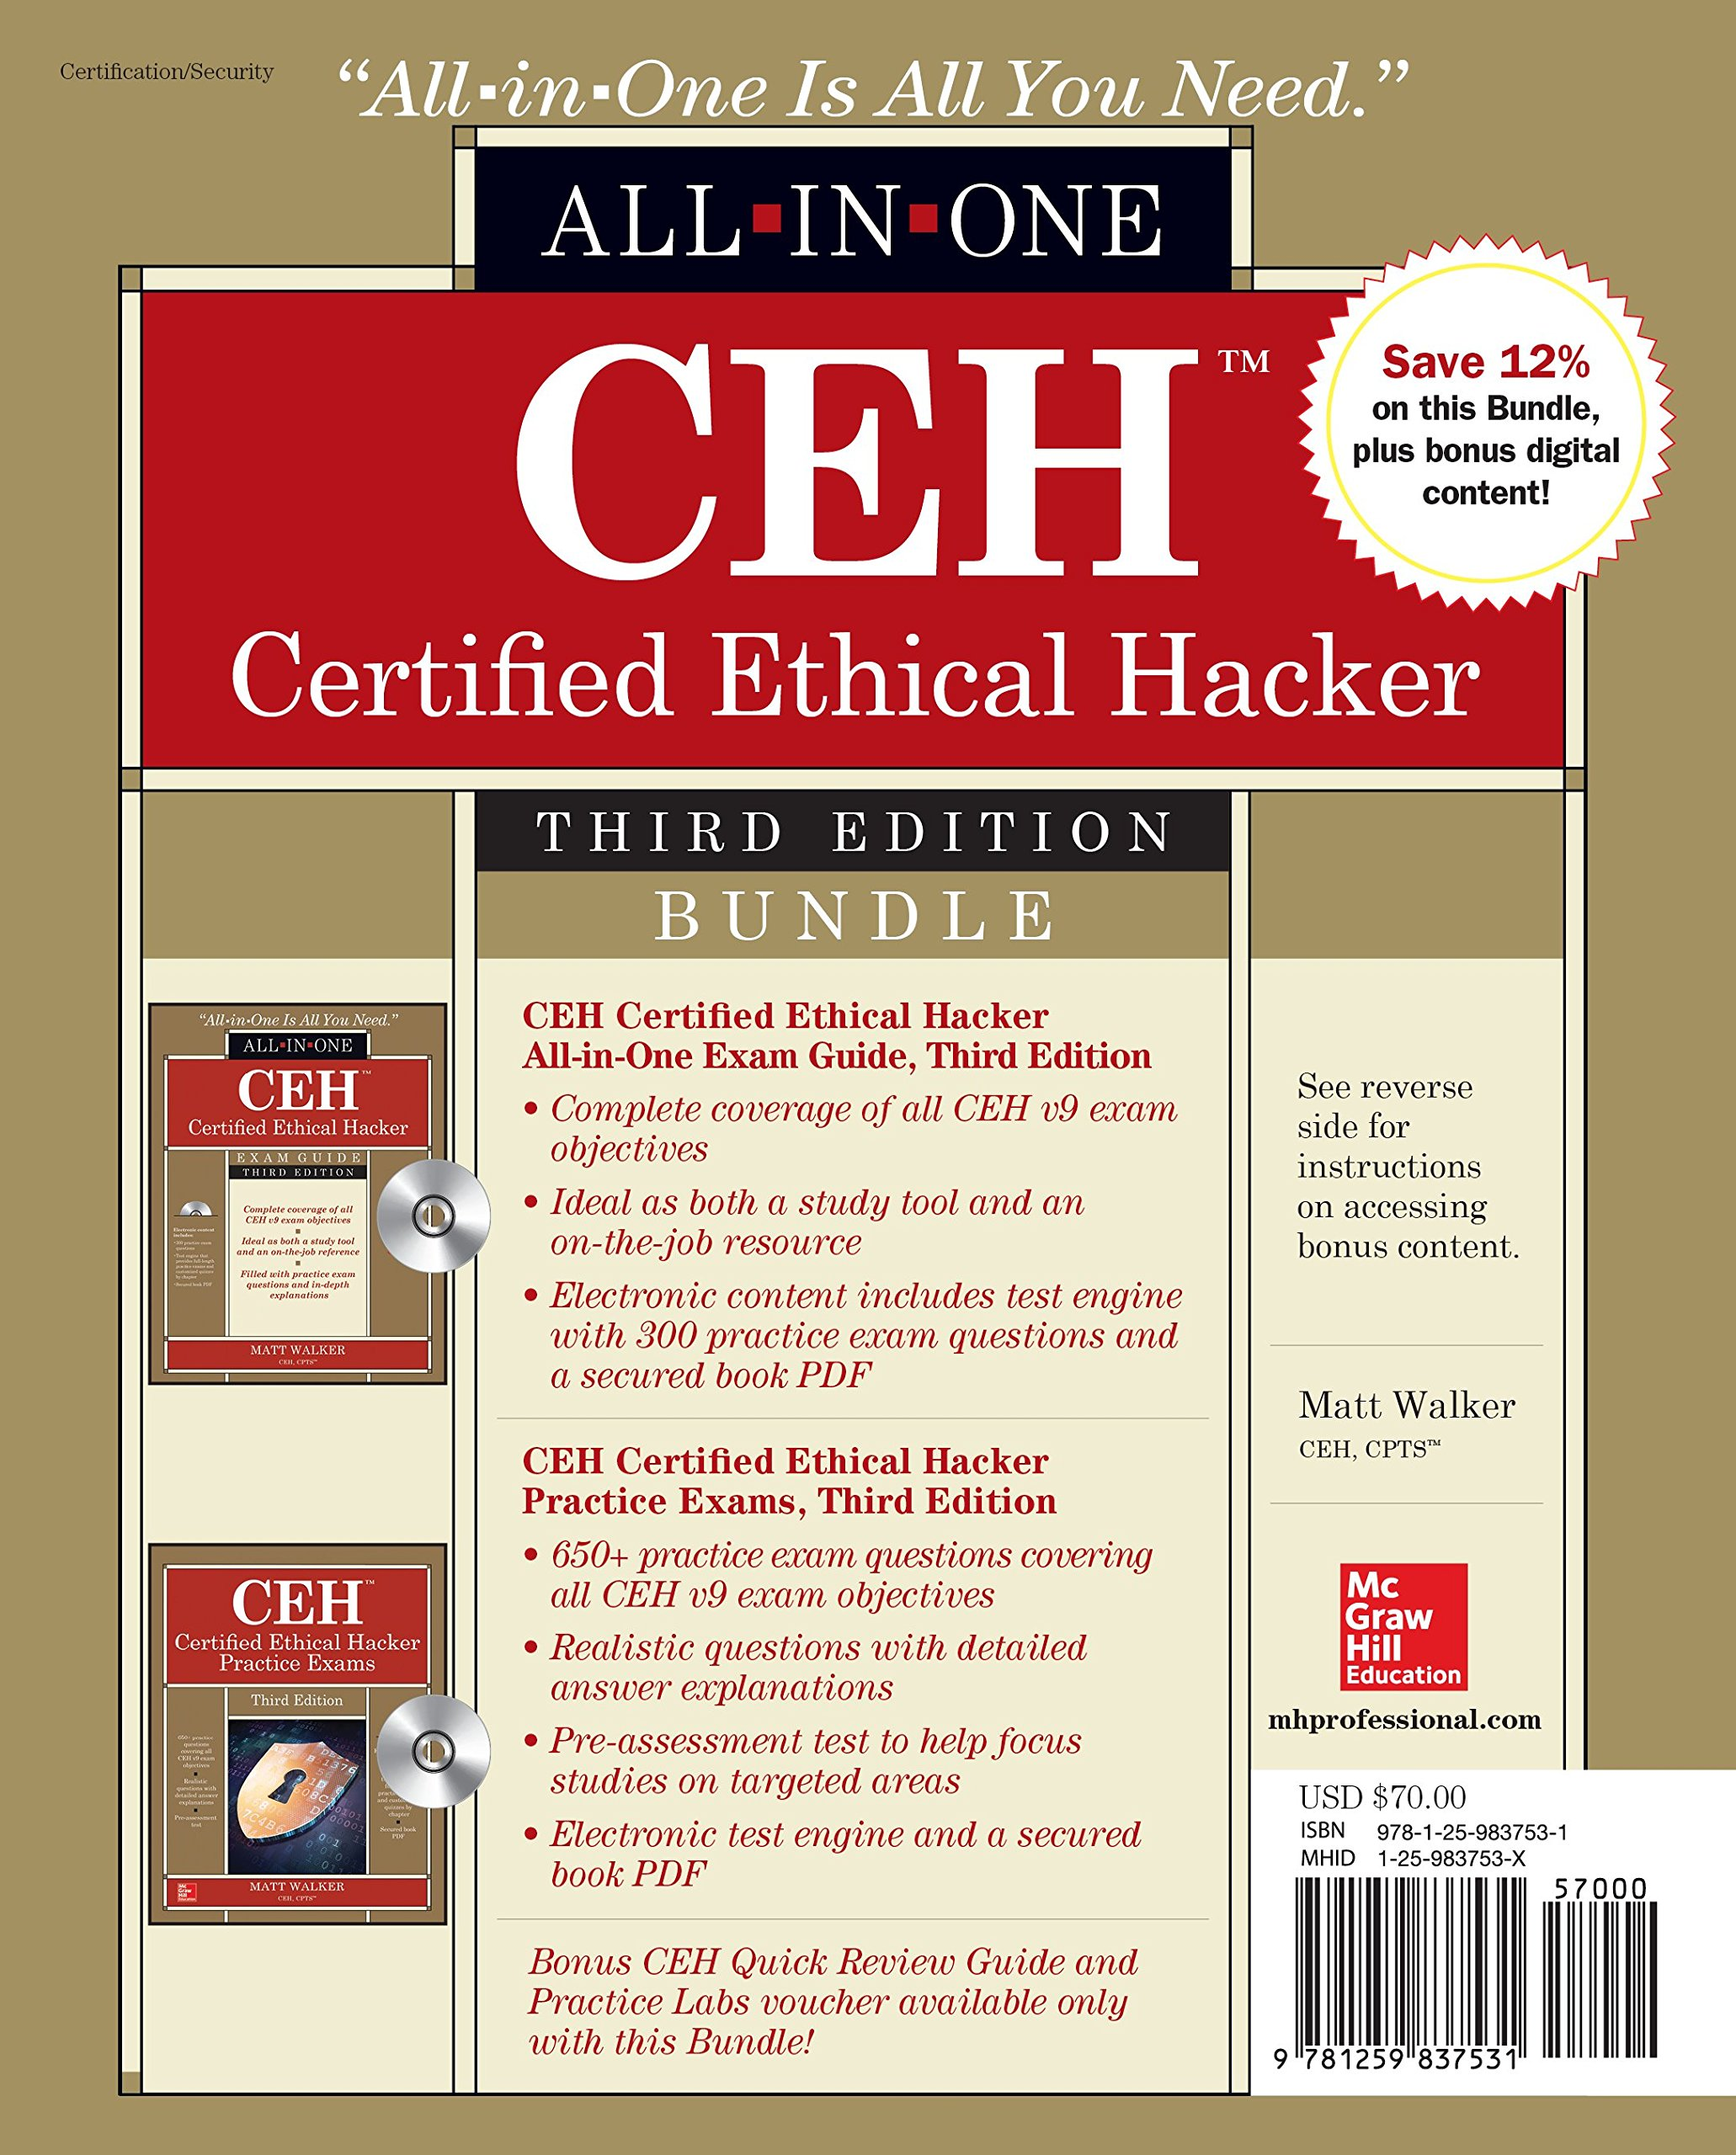 CEH Certified Ethical Hacker Bundle, Third Edition (All-in